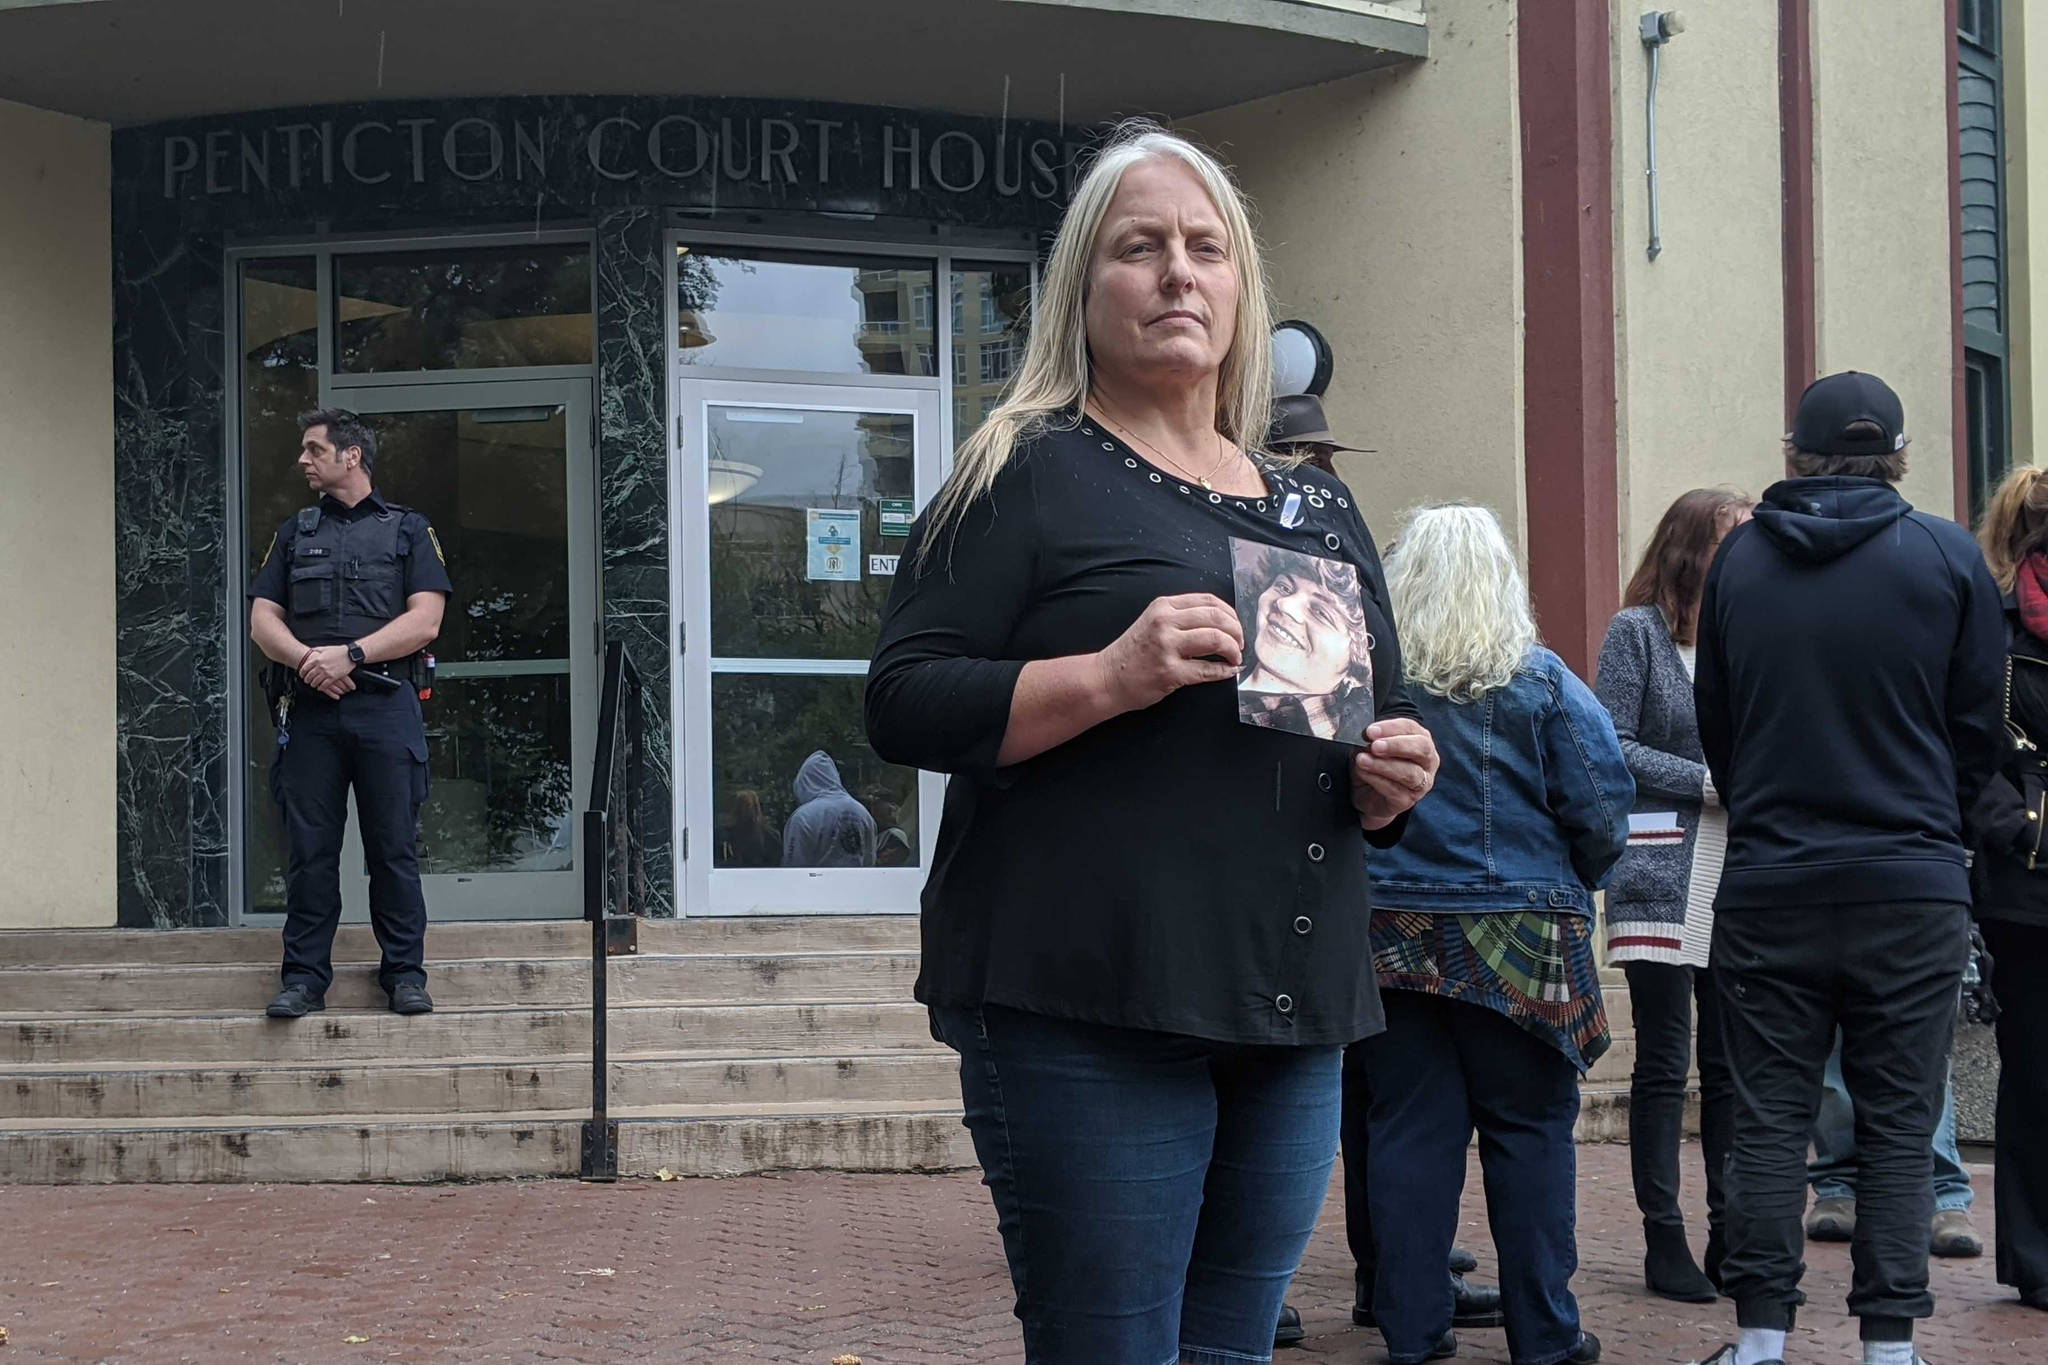 Lorrie Blackmore expressed her and her family's displeasure for what they see as a light sentence Sept. 23, 2020 in an emotional statement following Kiera Bourque being handed one year in prison for manslaughter in the 2017 death of Penticton's Devon Blackmore. (Jesse Day - Western News)